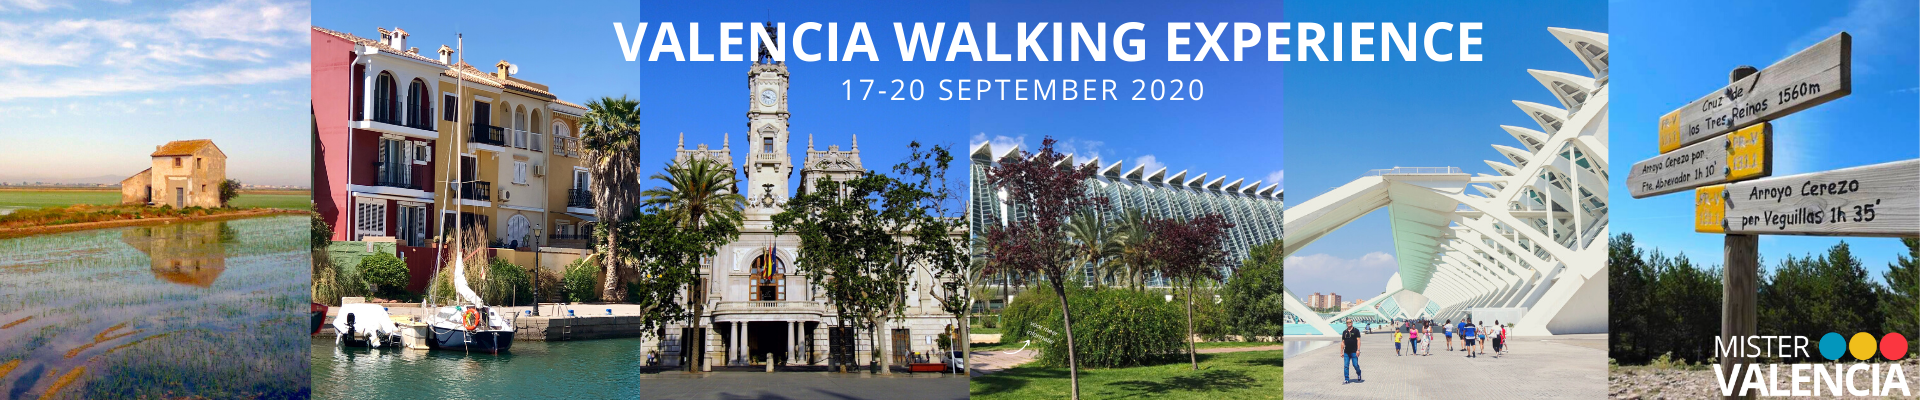 Valencia Walking Experience Sept 2020